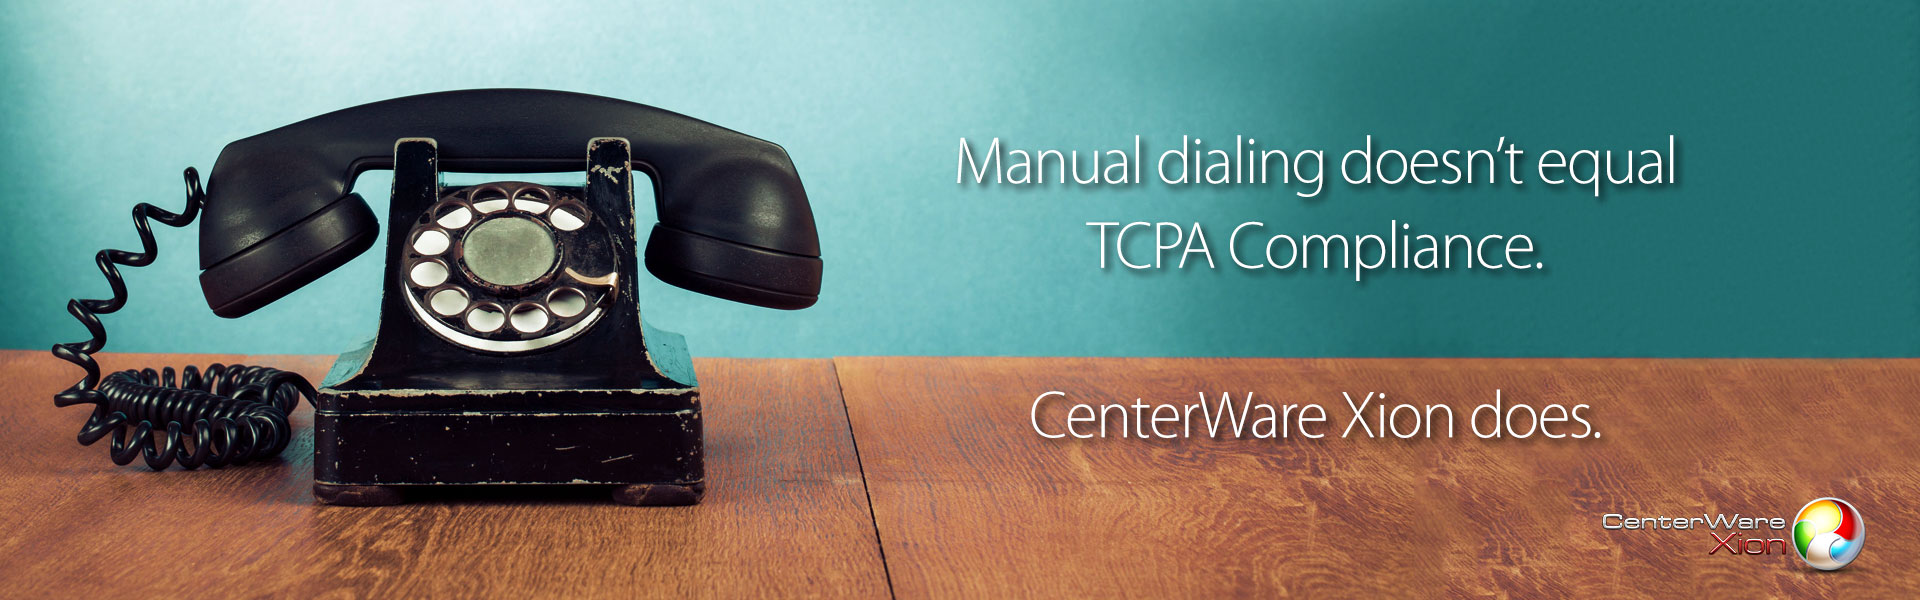 CenterWare Xion is TCPA Compliant.